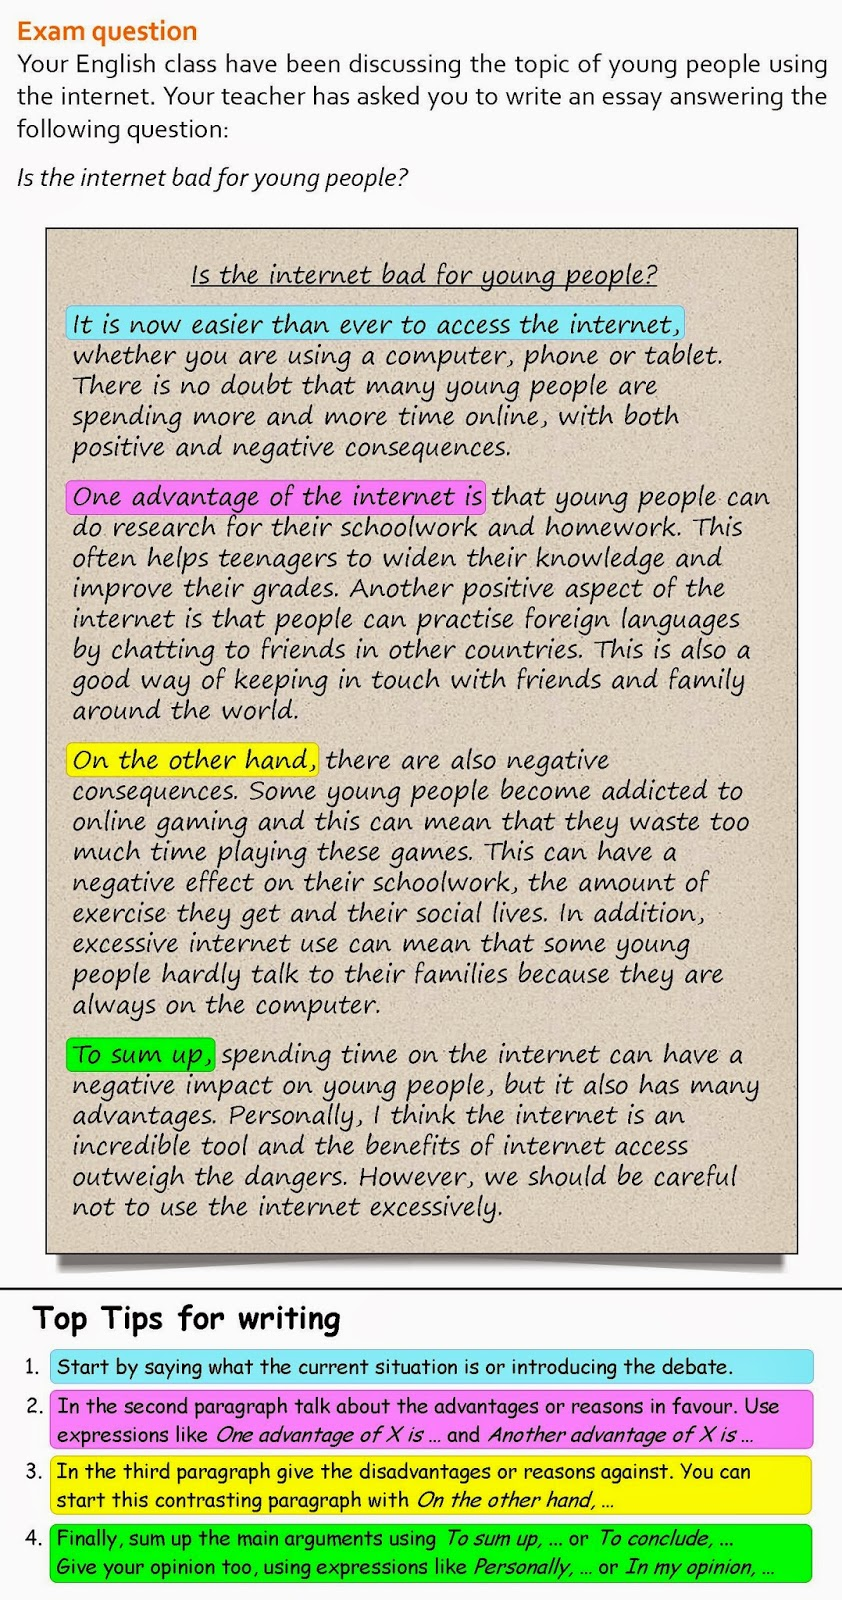 010 Opinion Essay B2w A For And Against 0 Magnificent Prompts 6th Grade Examples 3rd Full